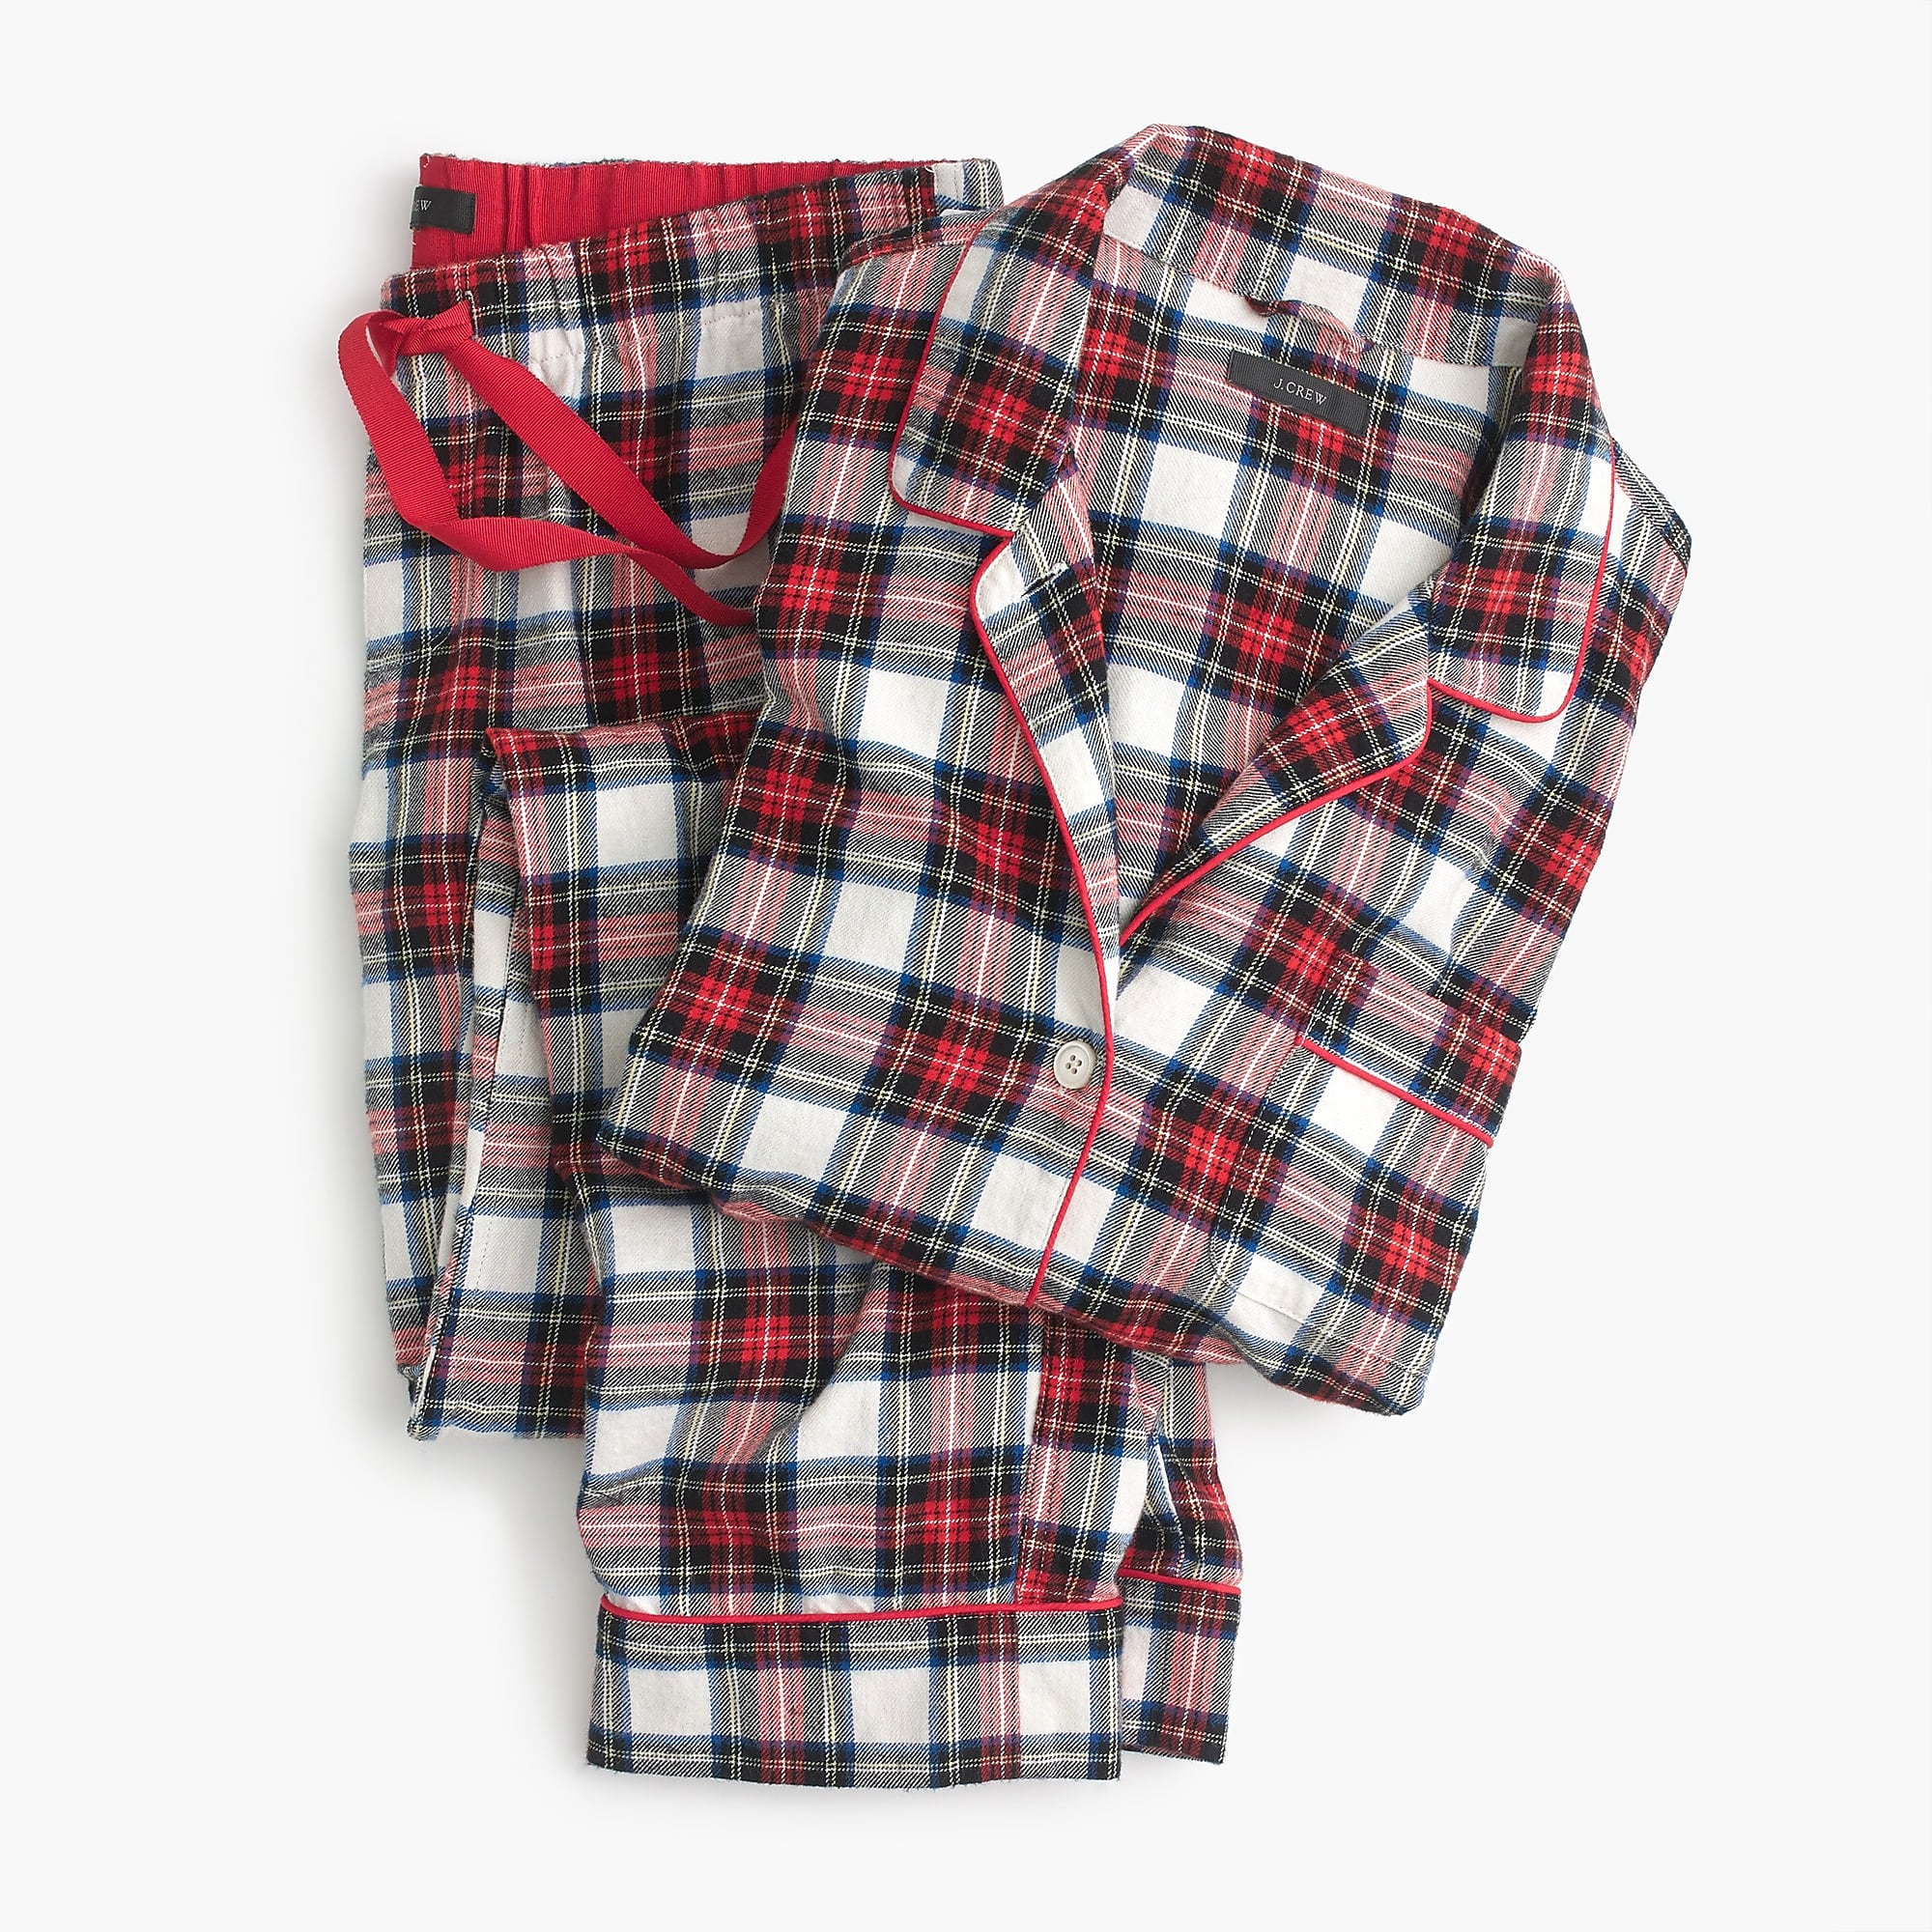 3a62af86f8 Holiday Pajamas for the Entire Family - Katie Considers